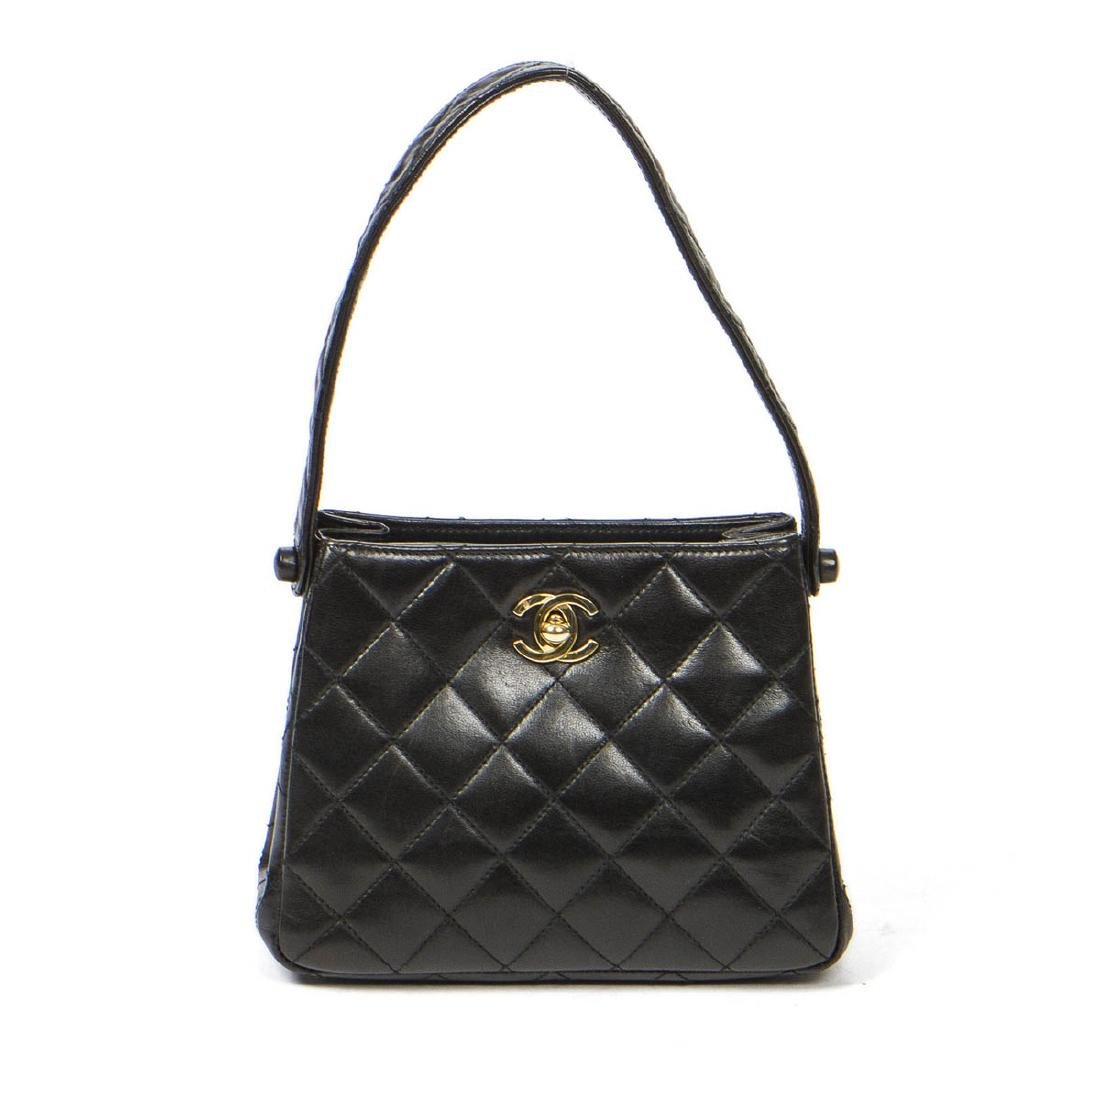 Chanel Small Handbag in Black Quilted leather